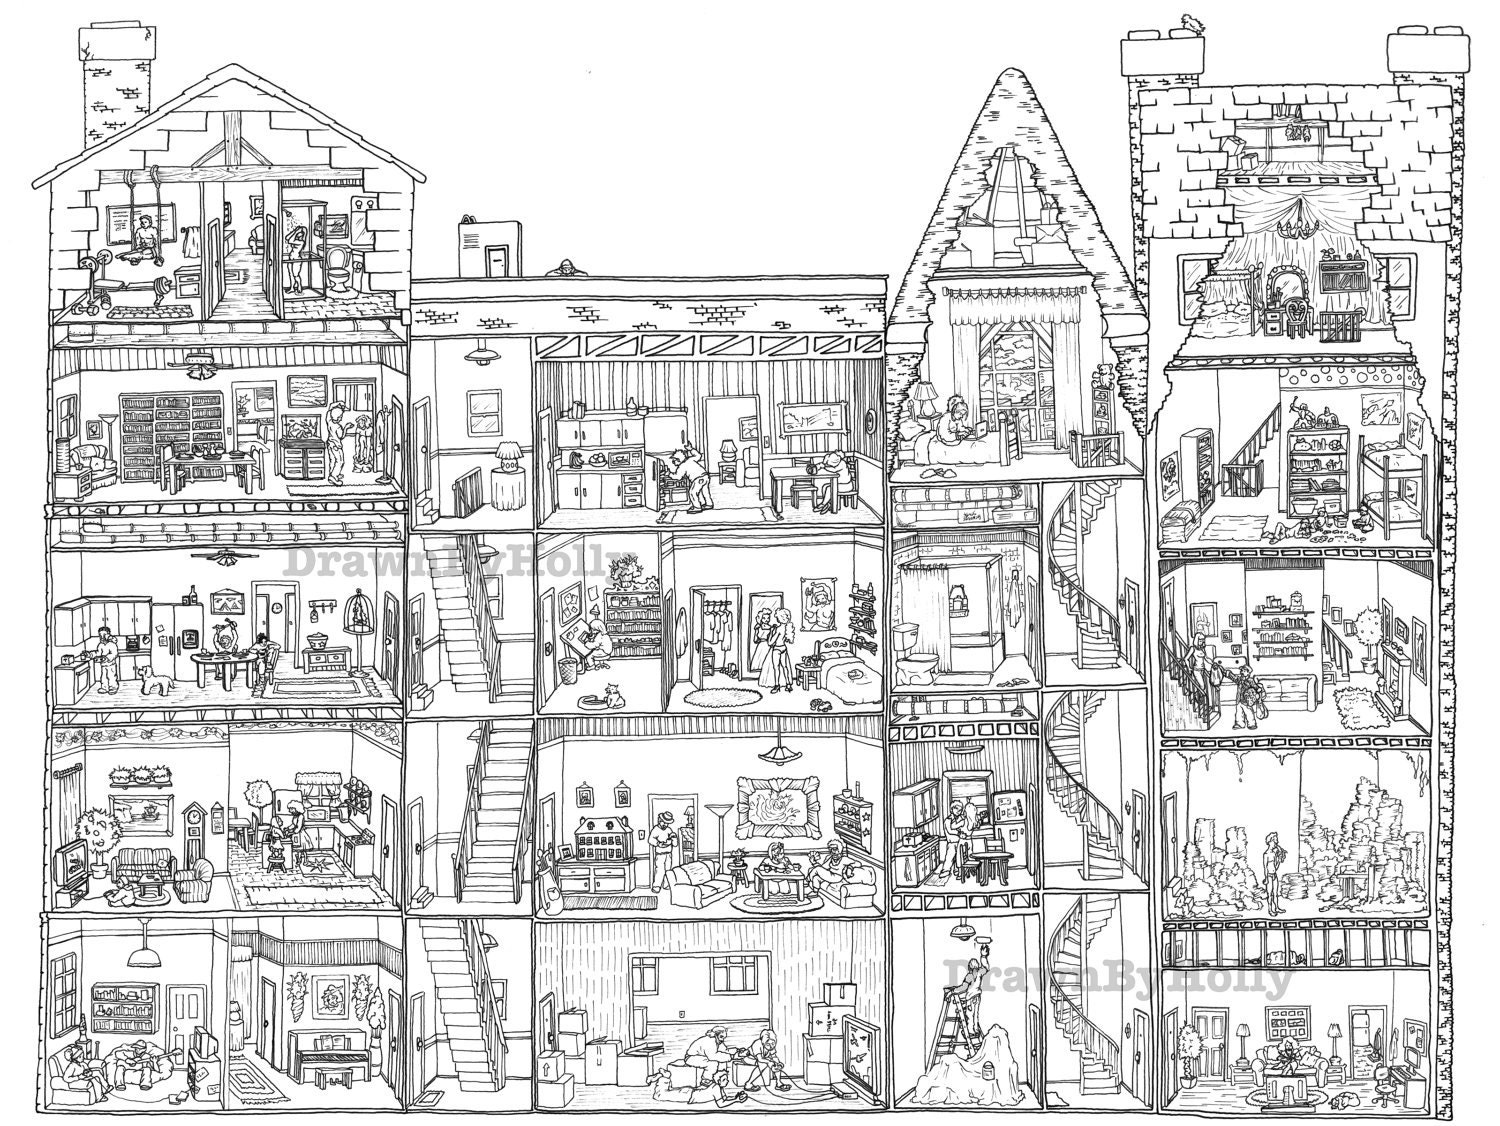 Coloring pages buildings ~ Apartment Building Cross-Section Coloring Poster 18 x